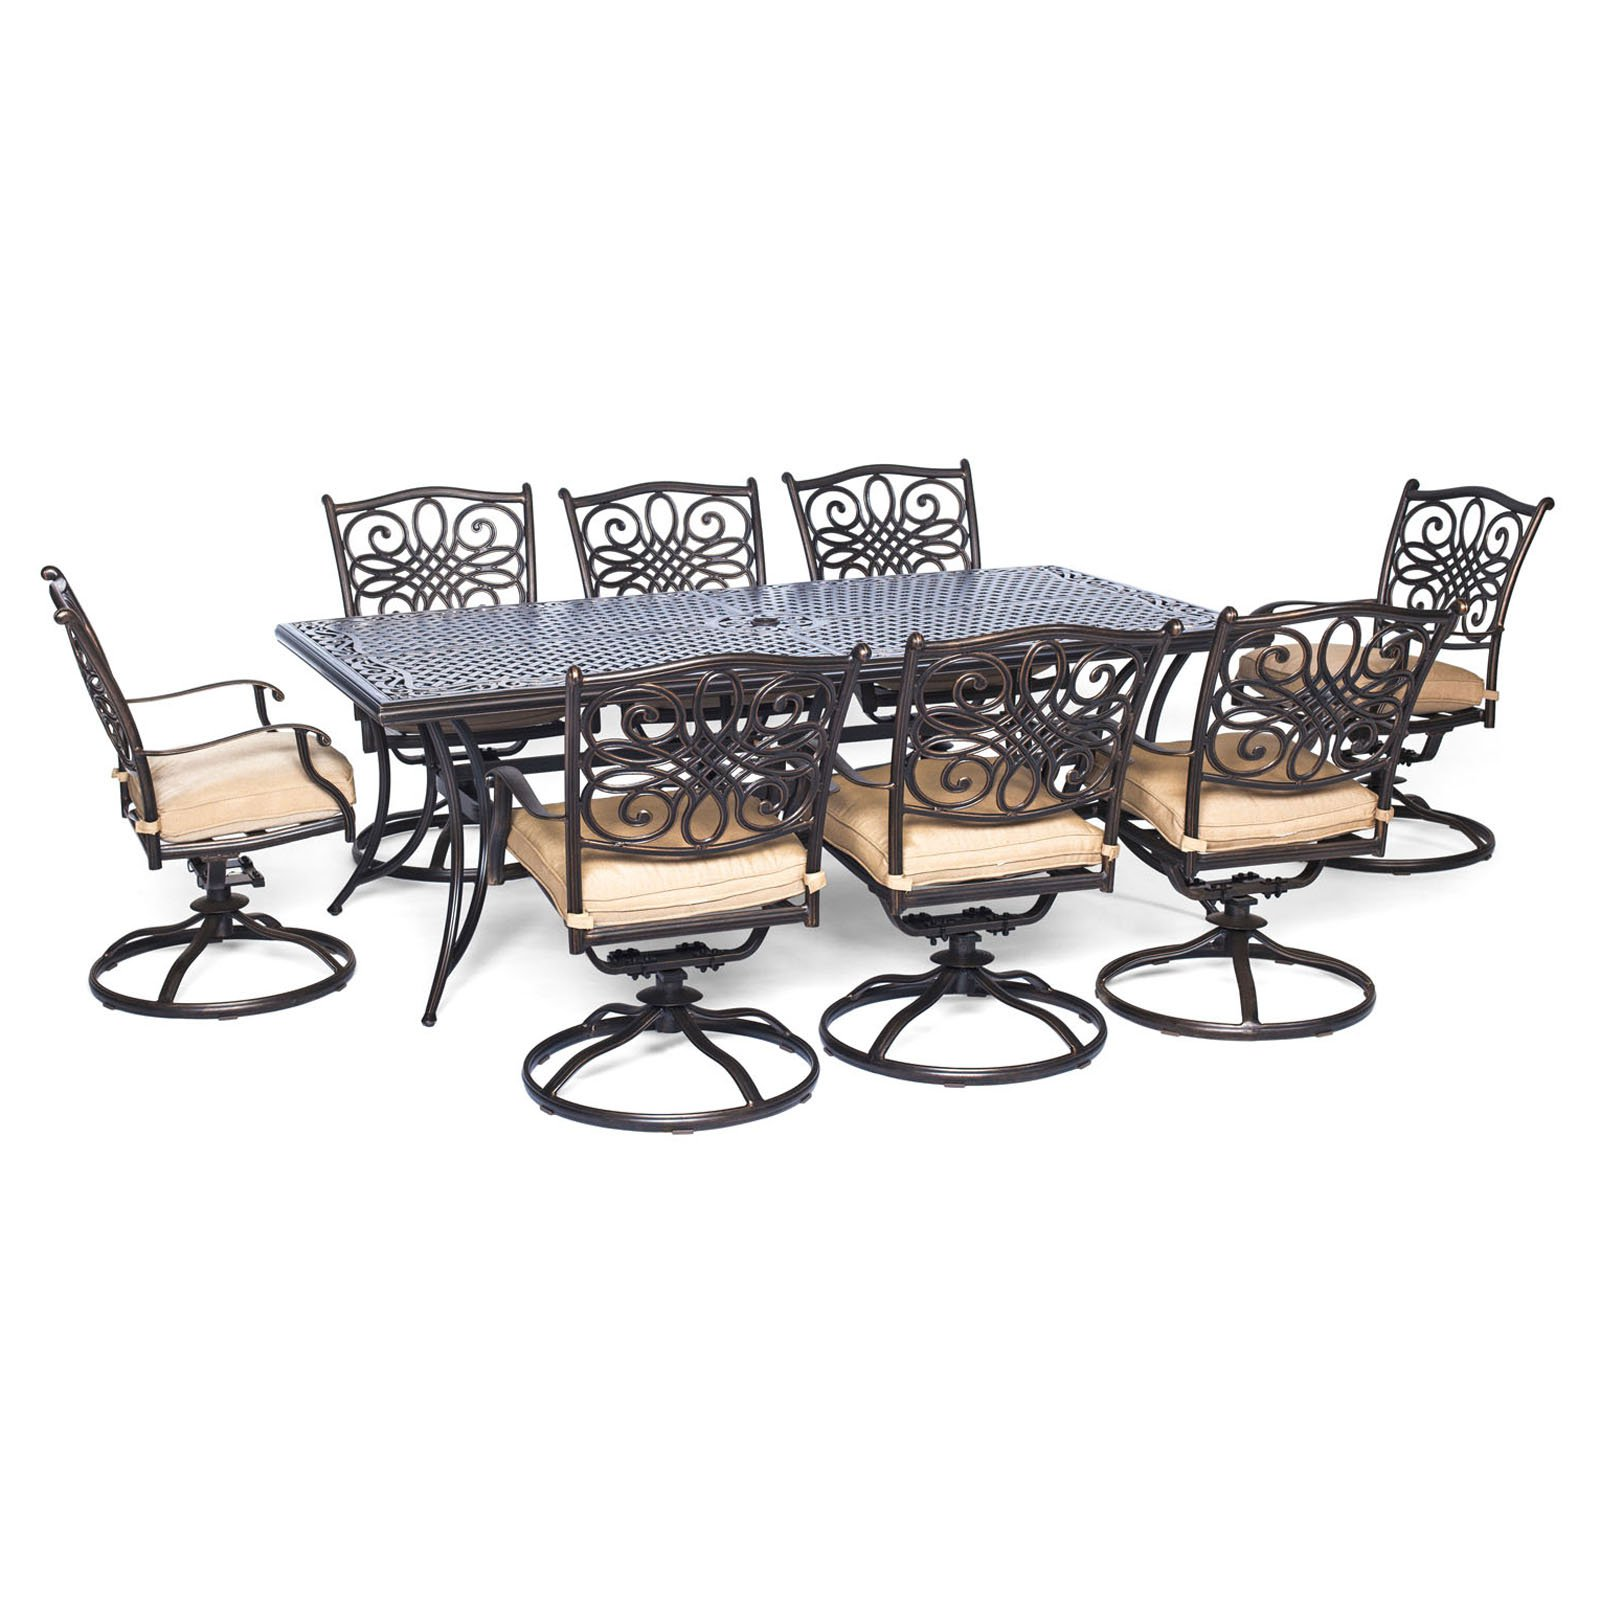 Hanover Outdoor Traditions 9-Piece Dining Set with Extra-Long Table and 8 Swivel Rockers, Natural Oat/Bronze